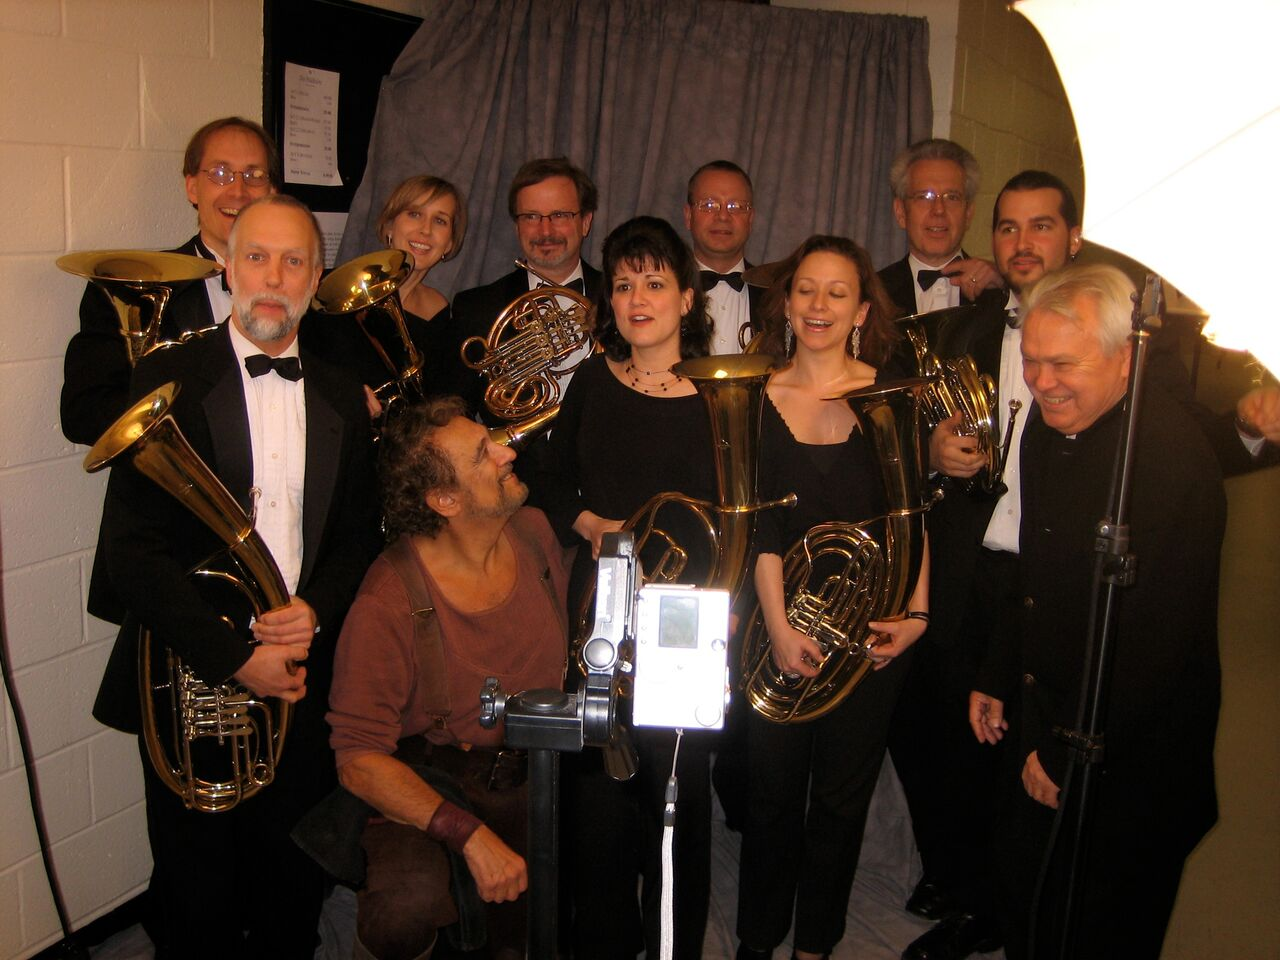 Domingo as Siegmund in Die   Walküre poses with the french horn section and Maestro Fricke